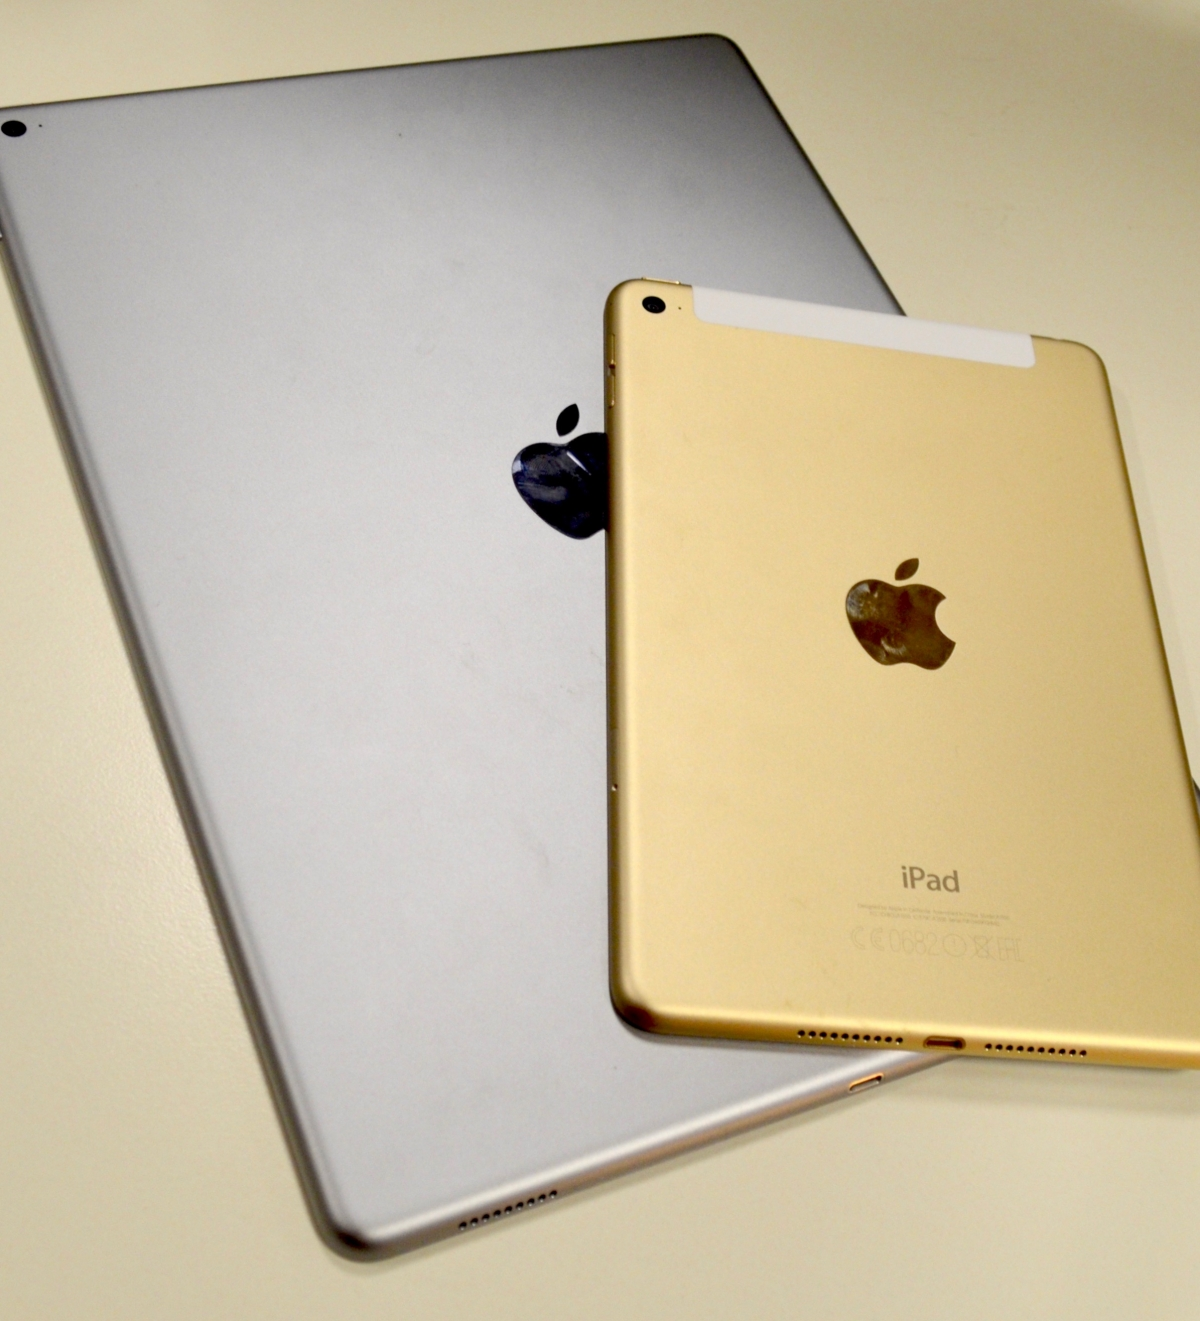 Apple iPad Pro review: Big screen thrills me at a high price